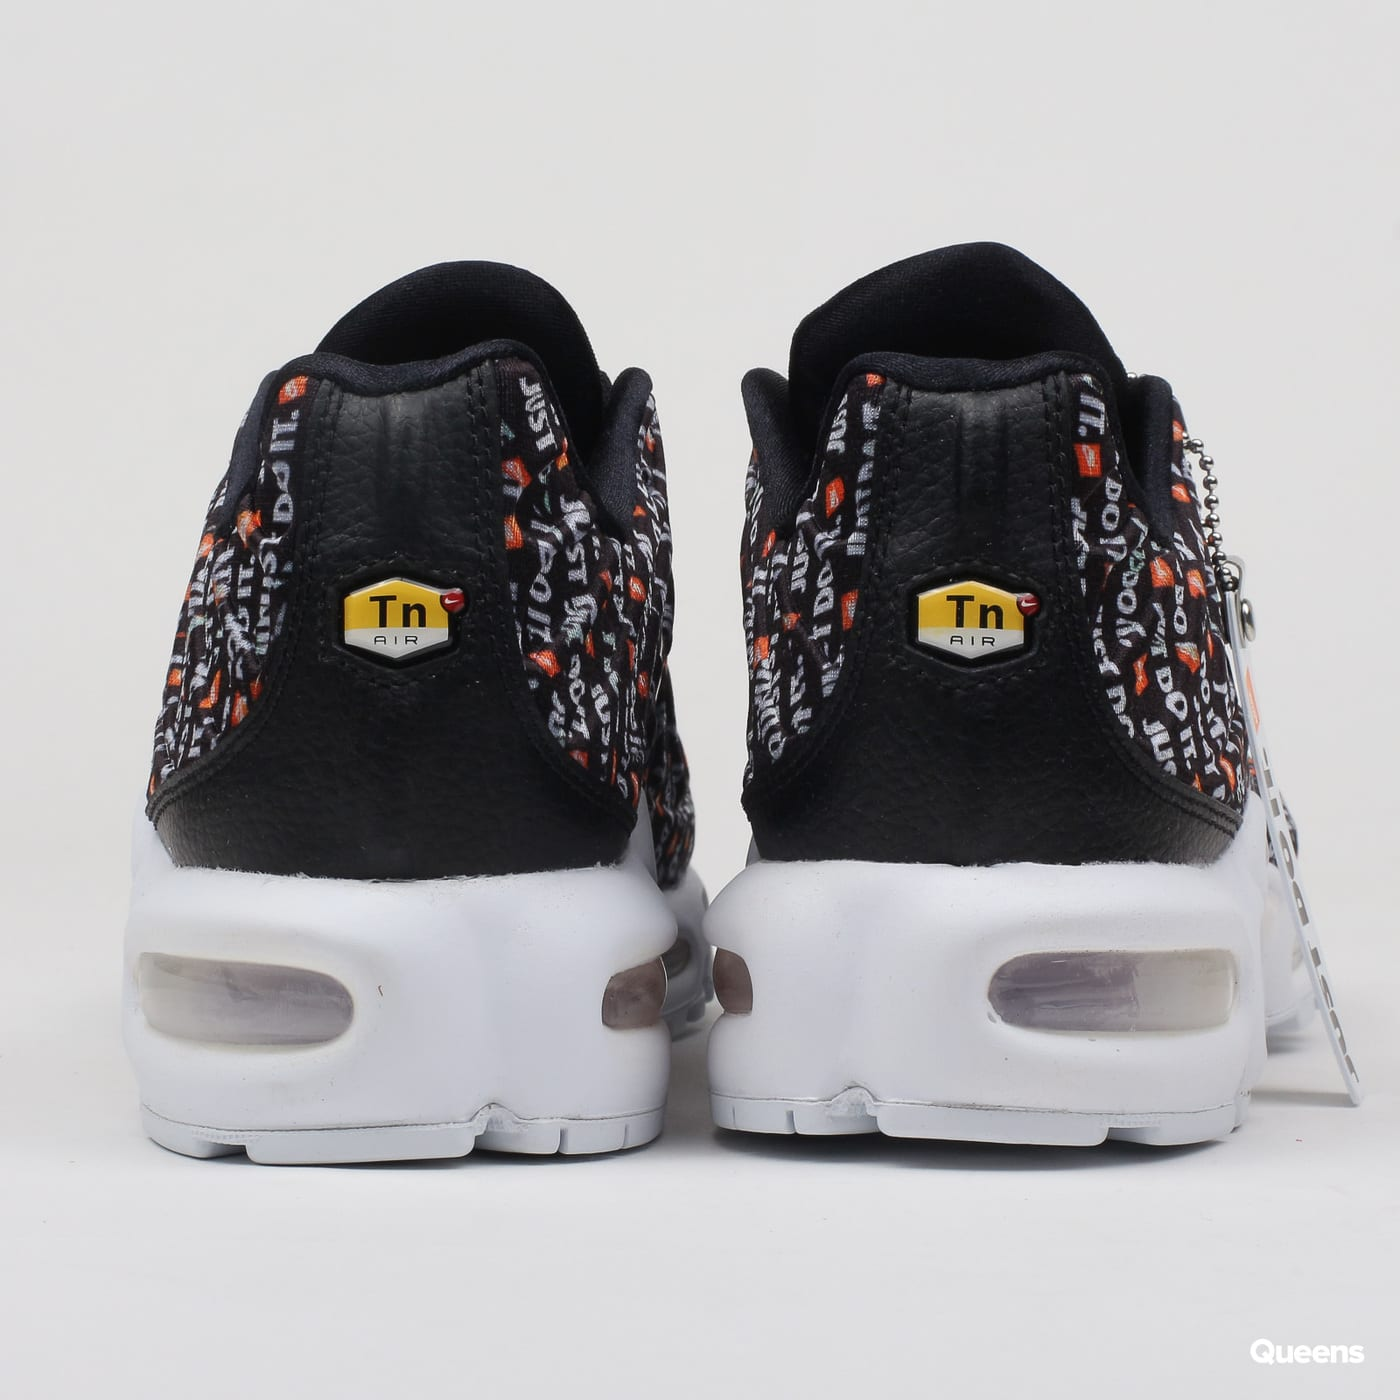 Nike WMNS Air Max Plus SE black / black - white - total orange